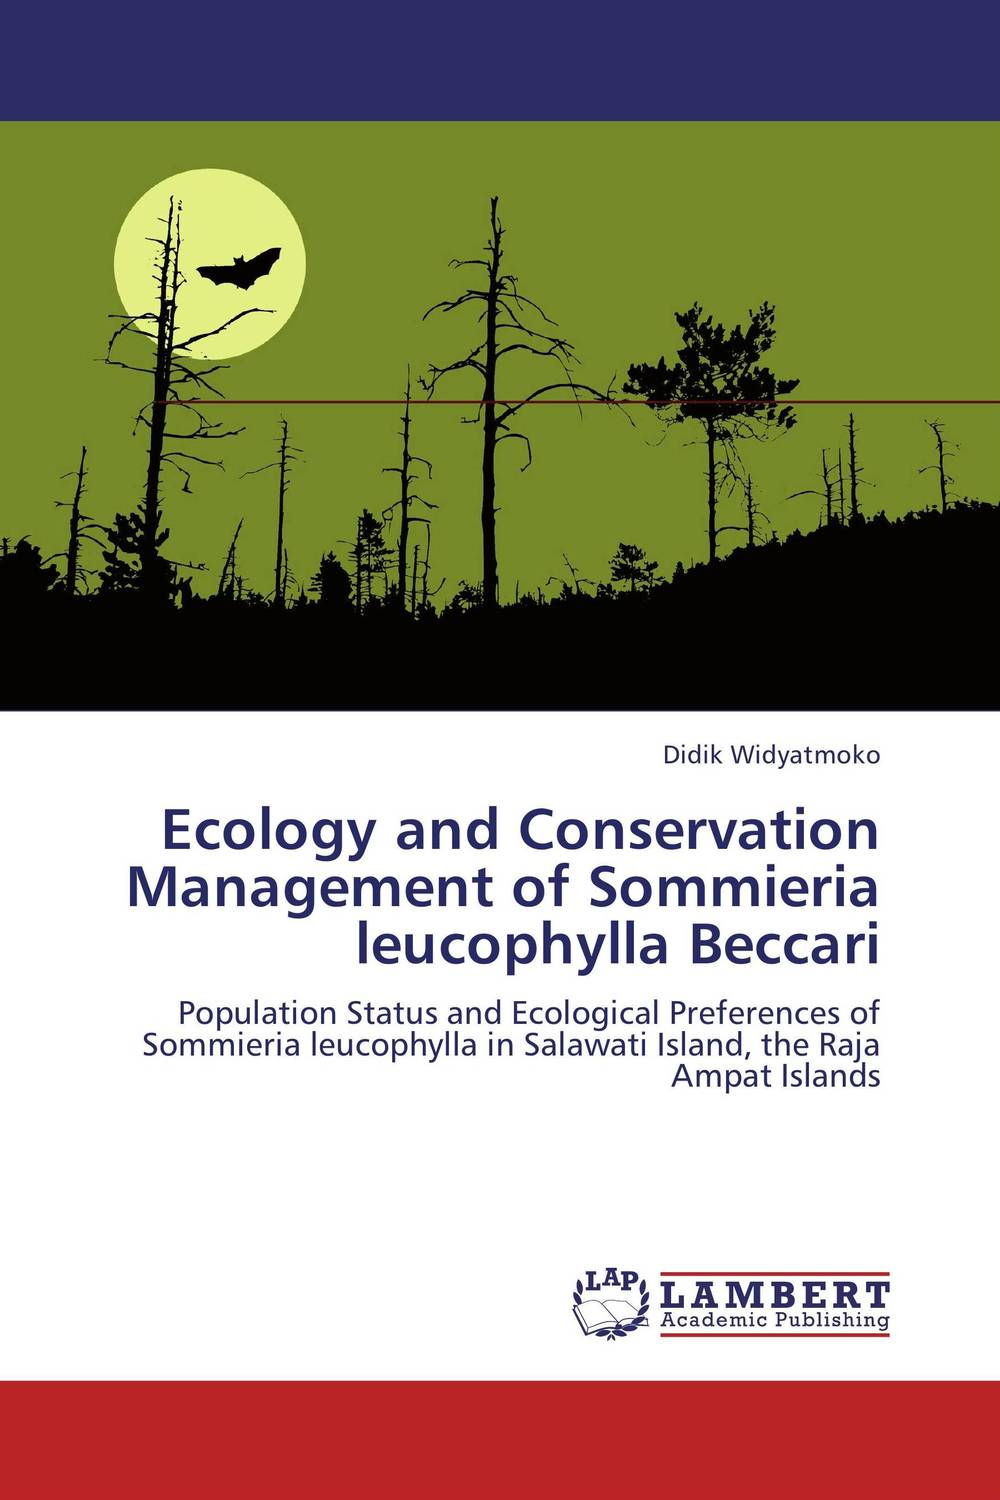 Ecology and Conservation Management of Sommieria leucophylla Beccari tigers of the world second edition the science politics and conservation of panthera tigris noyes series in animal behavior ecology conservation and management